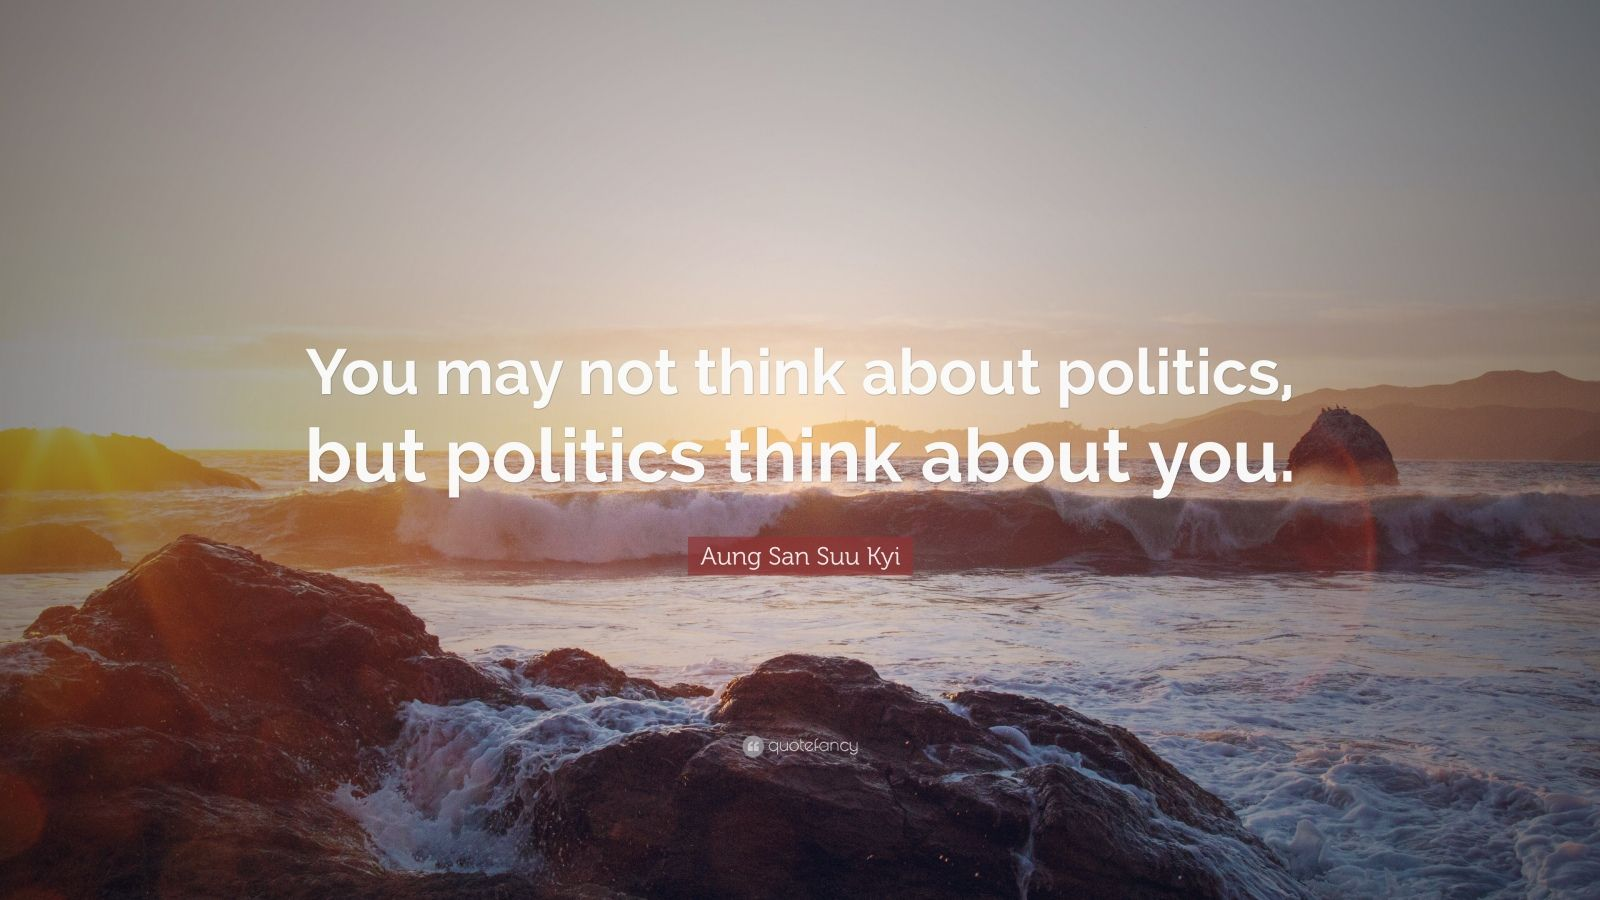 """Aung San Suu Kyi Quote: """"You may not think about politics, but politics think about you."""""""